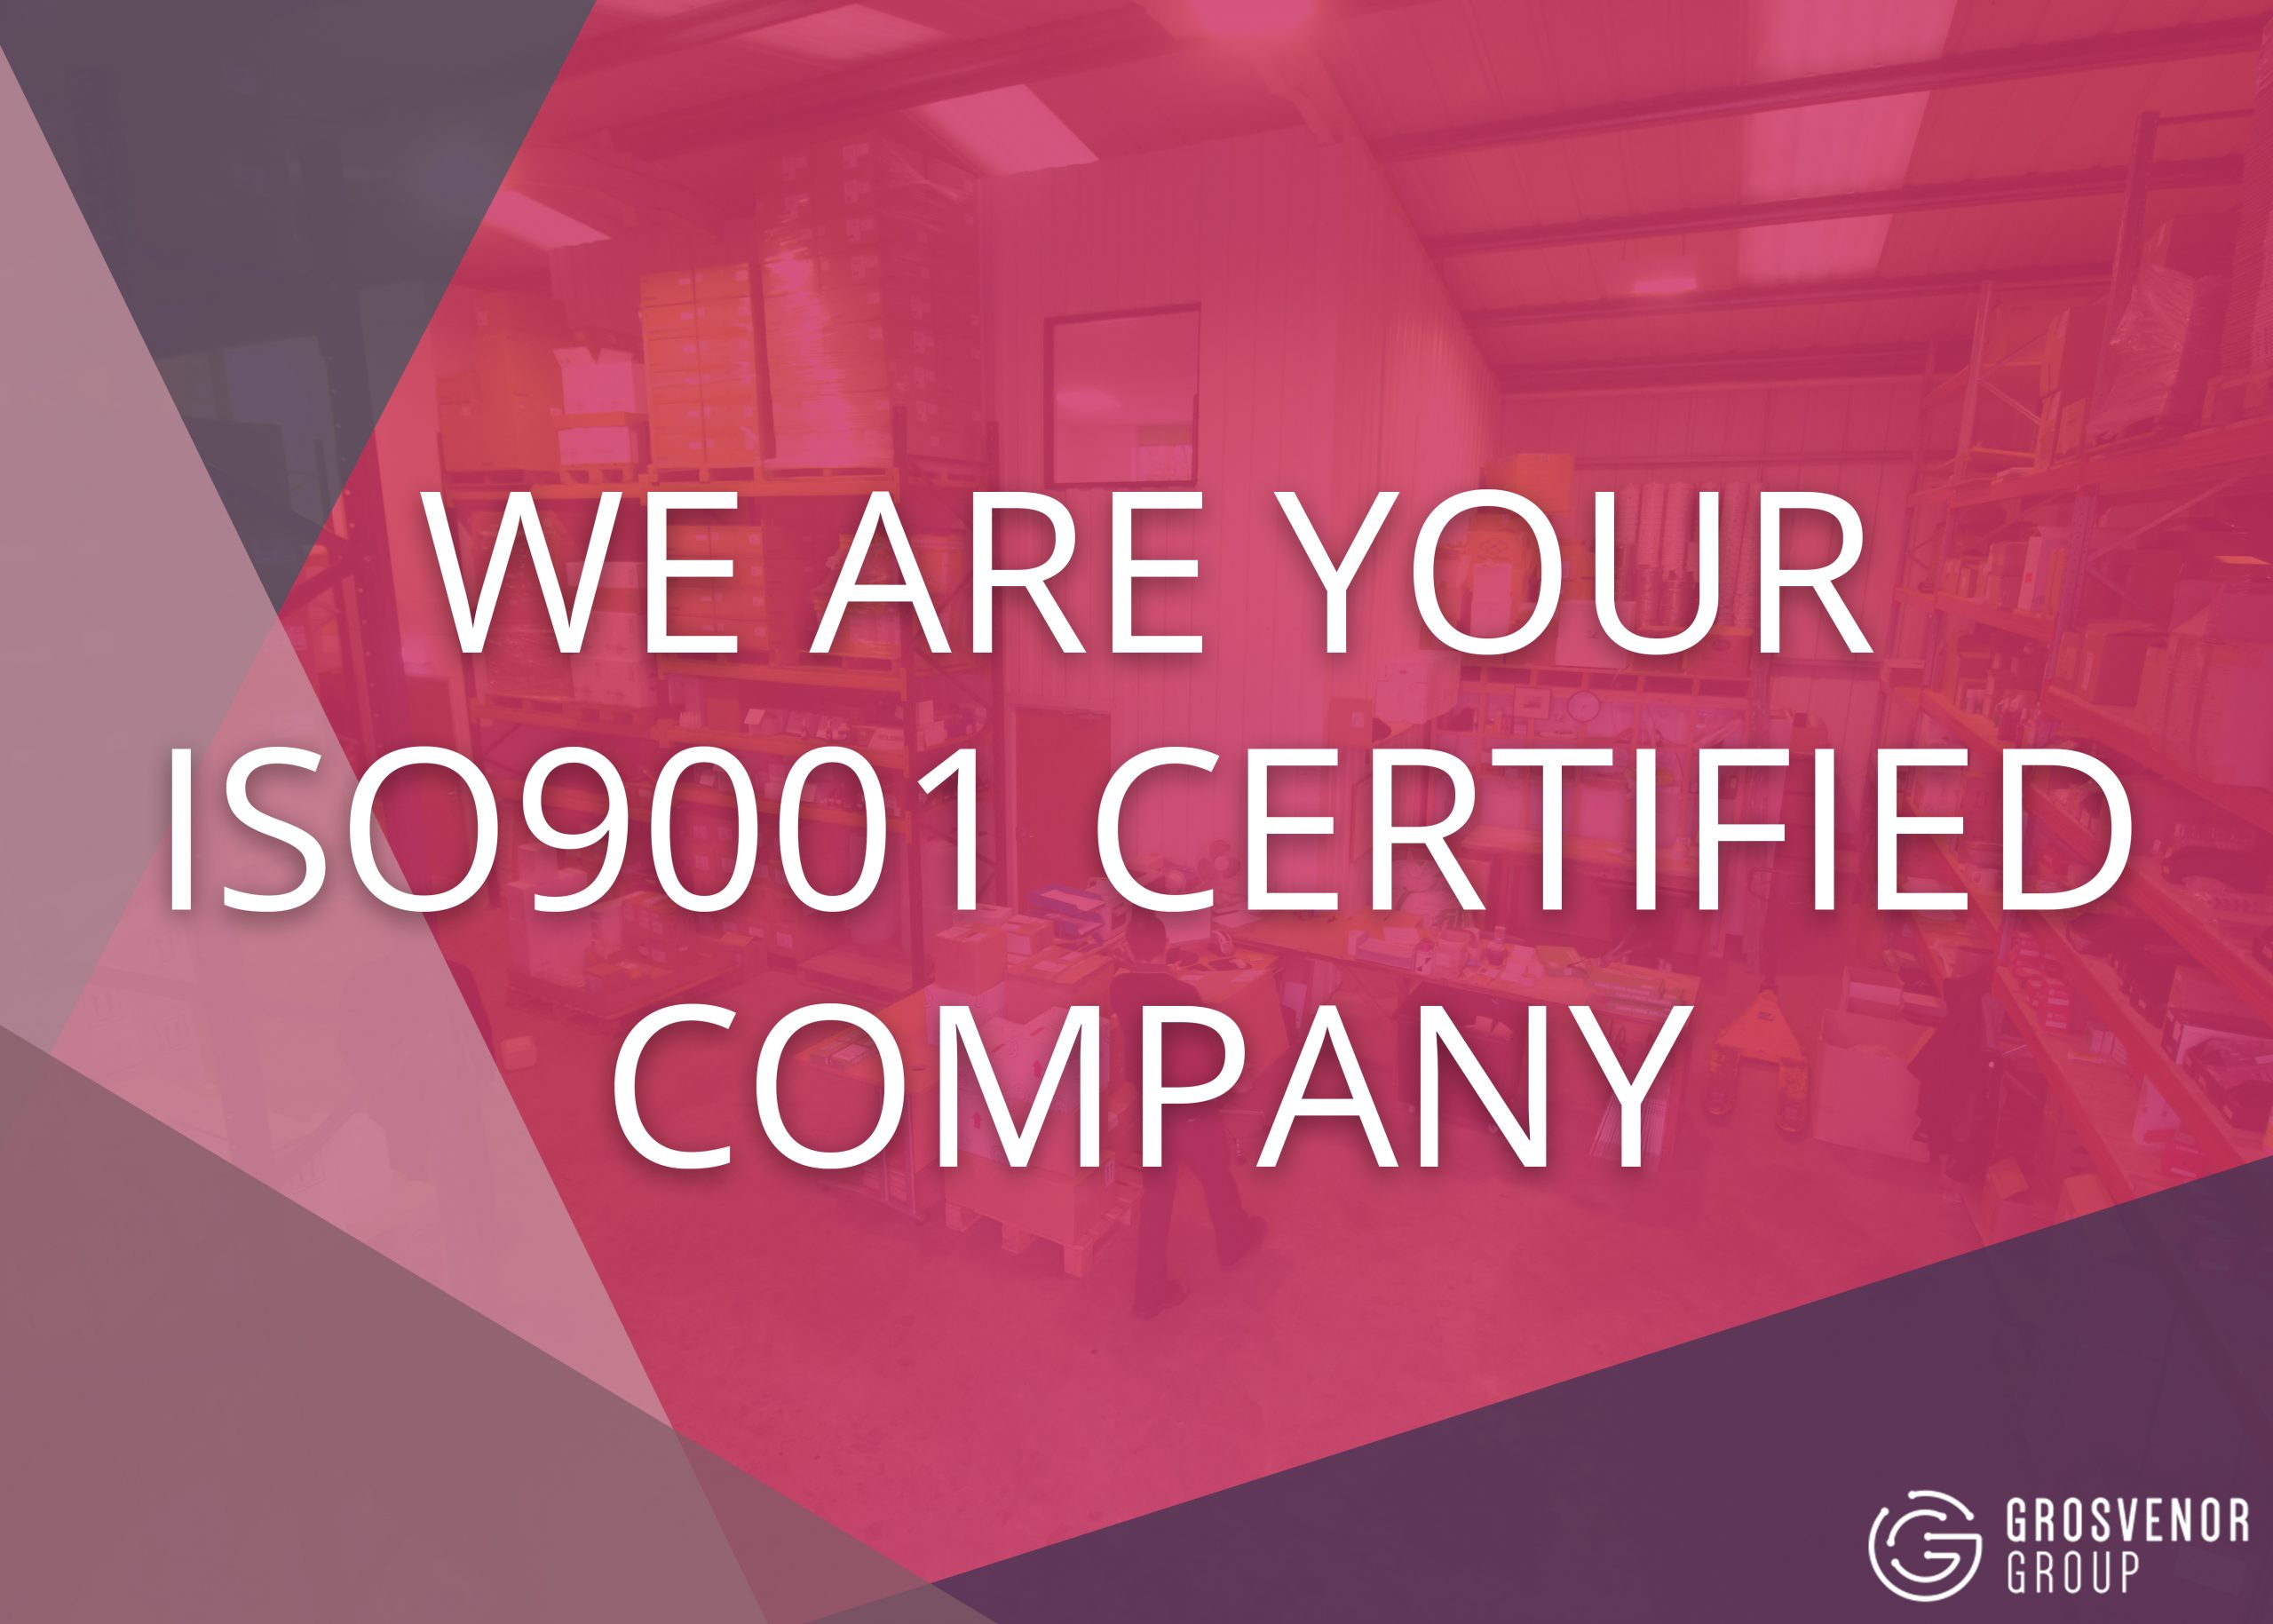 We Are Your ISO9001 Certified Company